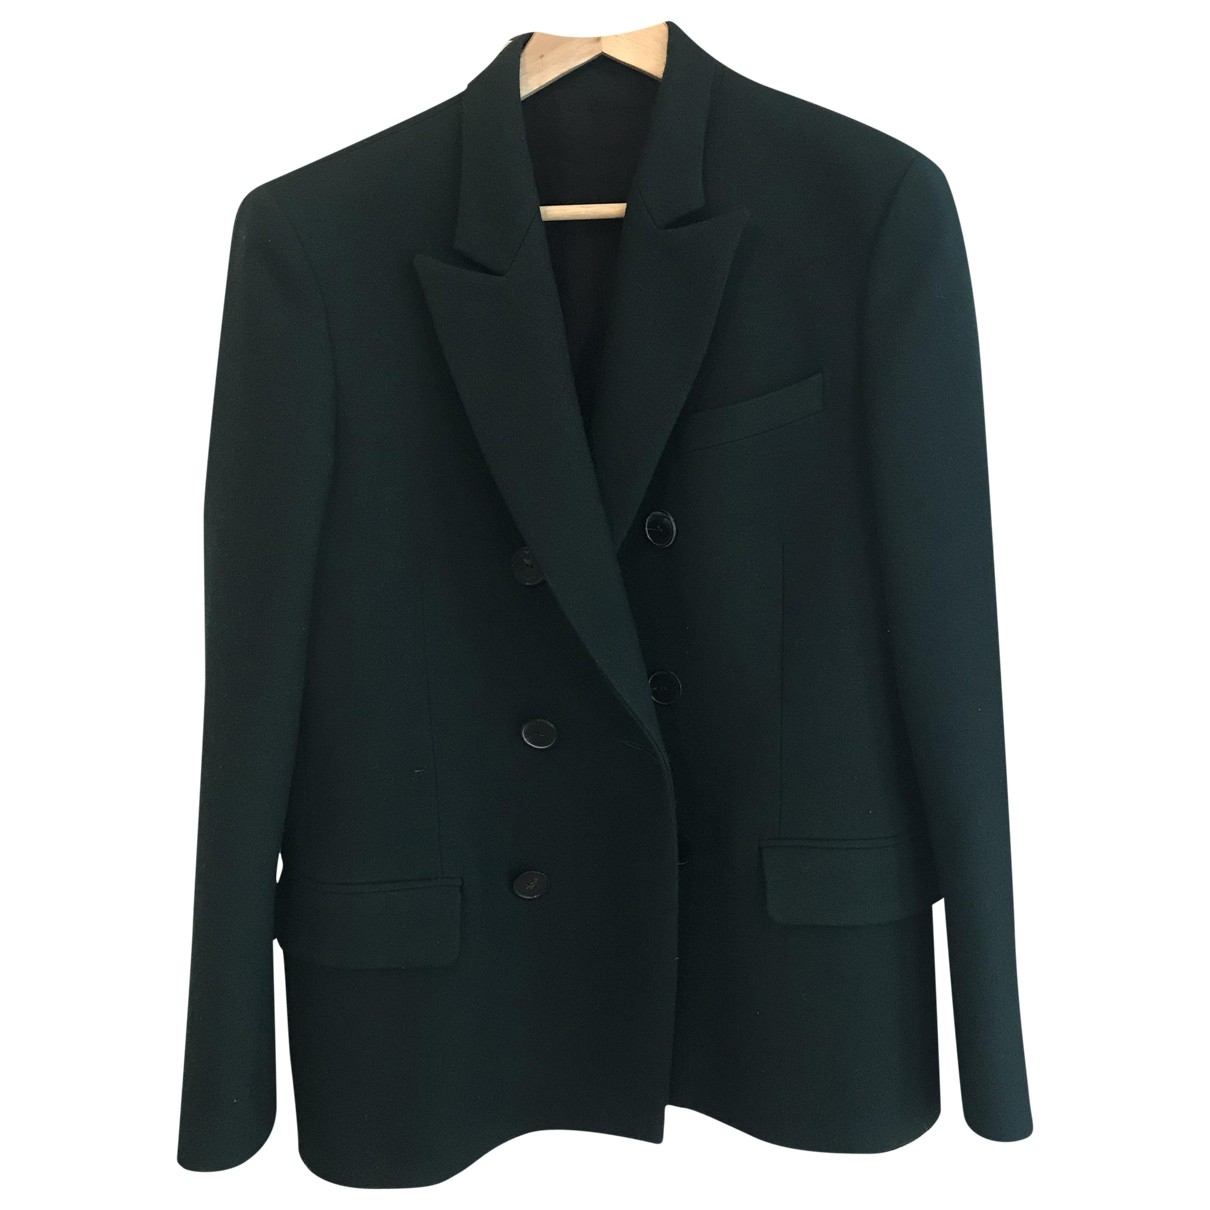 Balmain \N Green Wool jacket  for Men S International